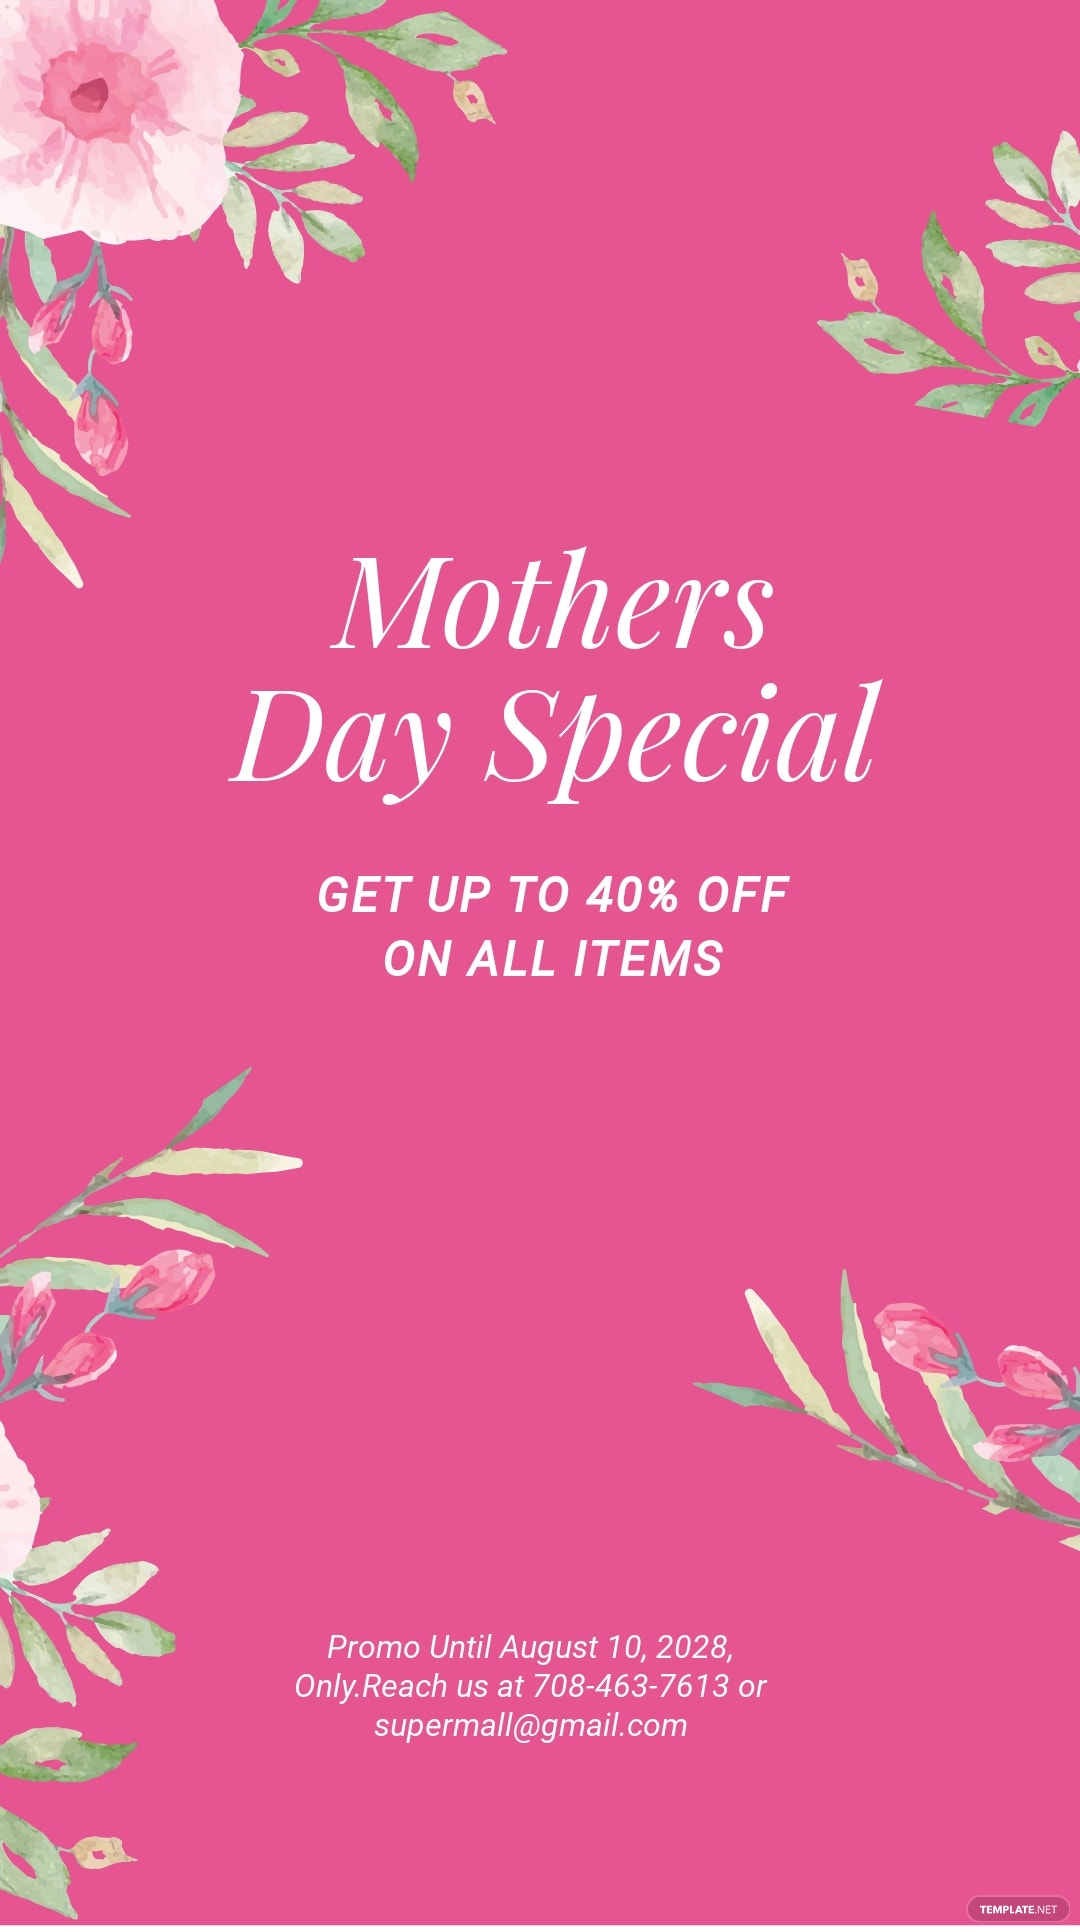 Mothers Day Special Sale Instagram Story Template